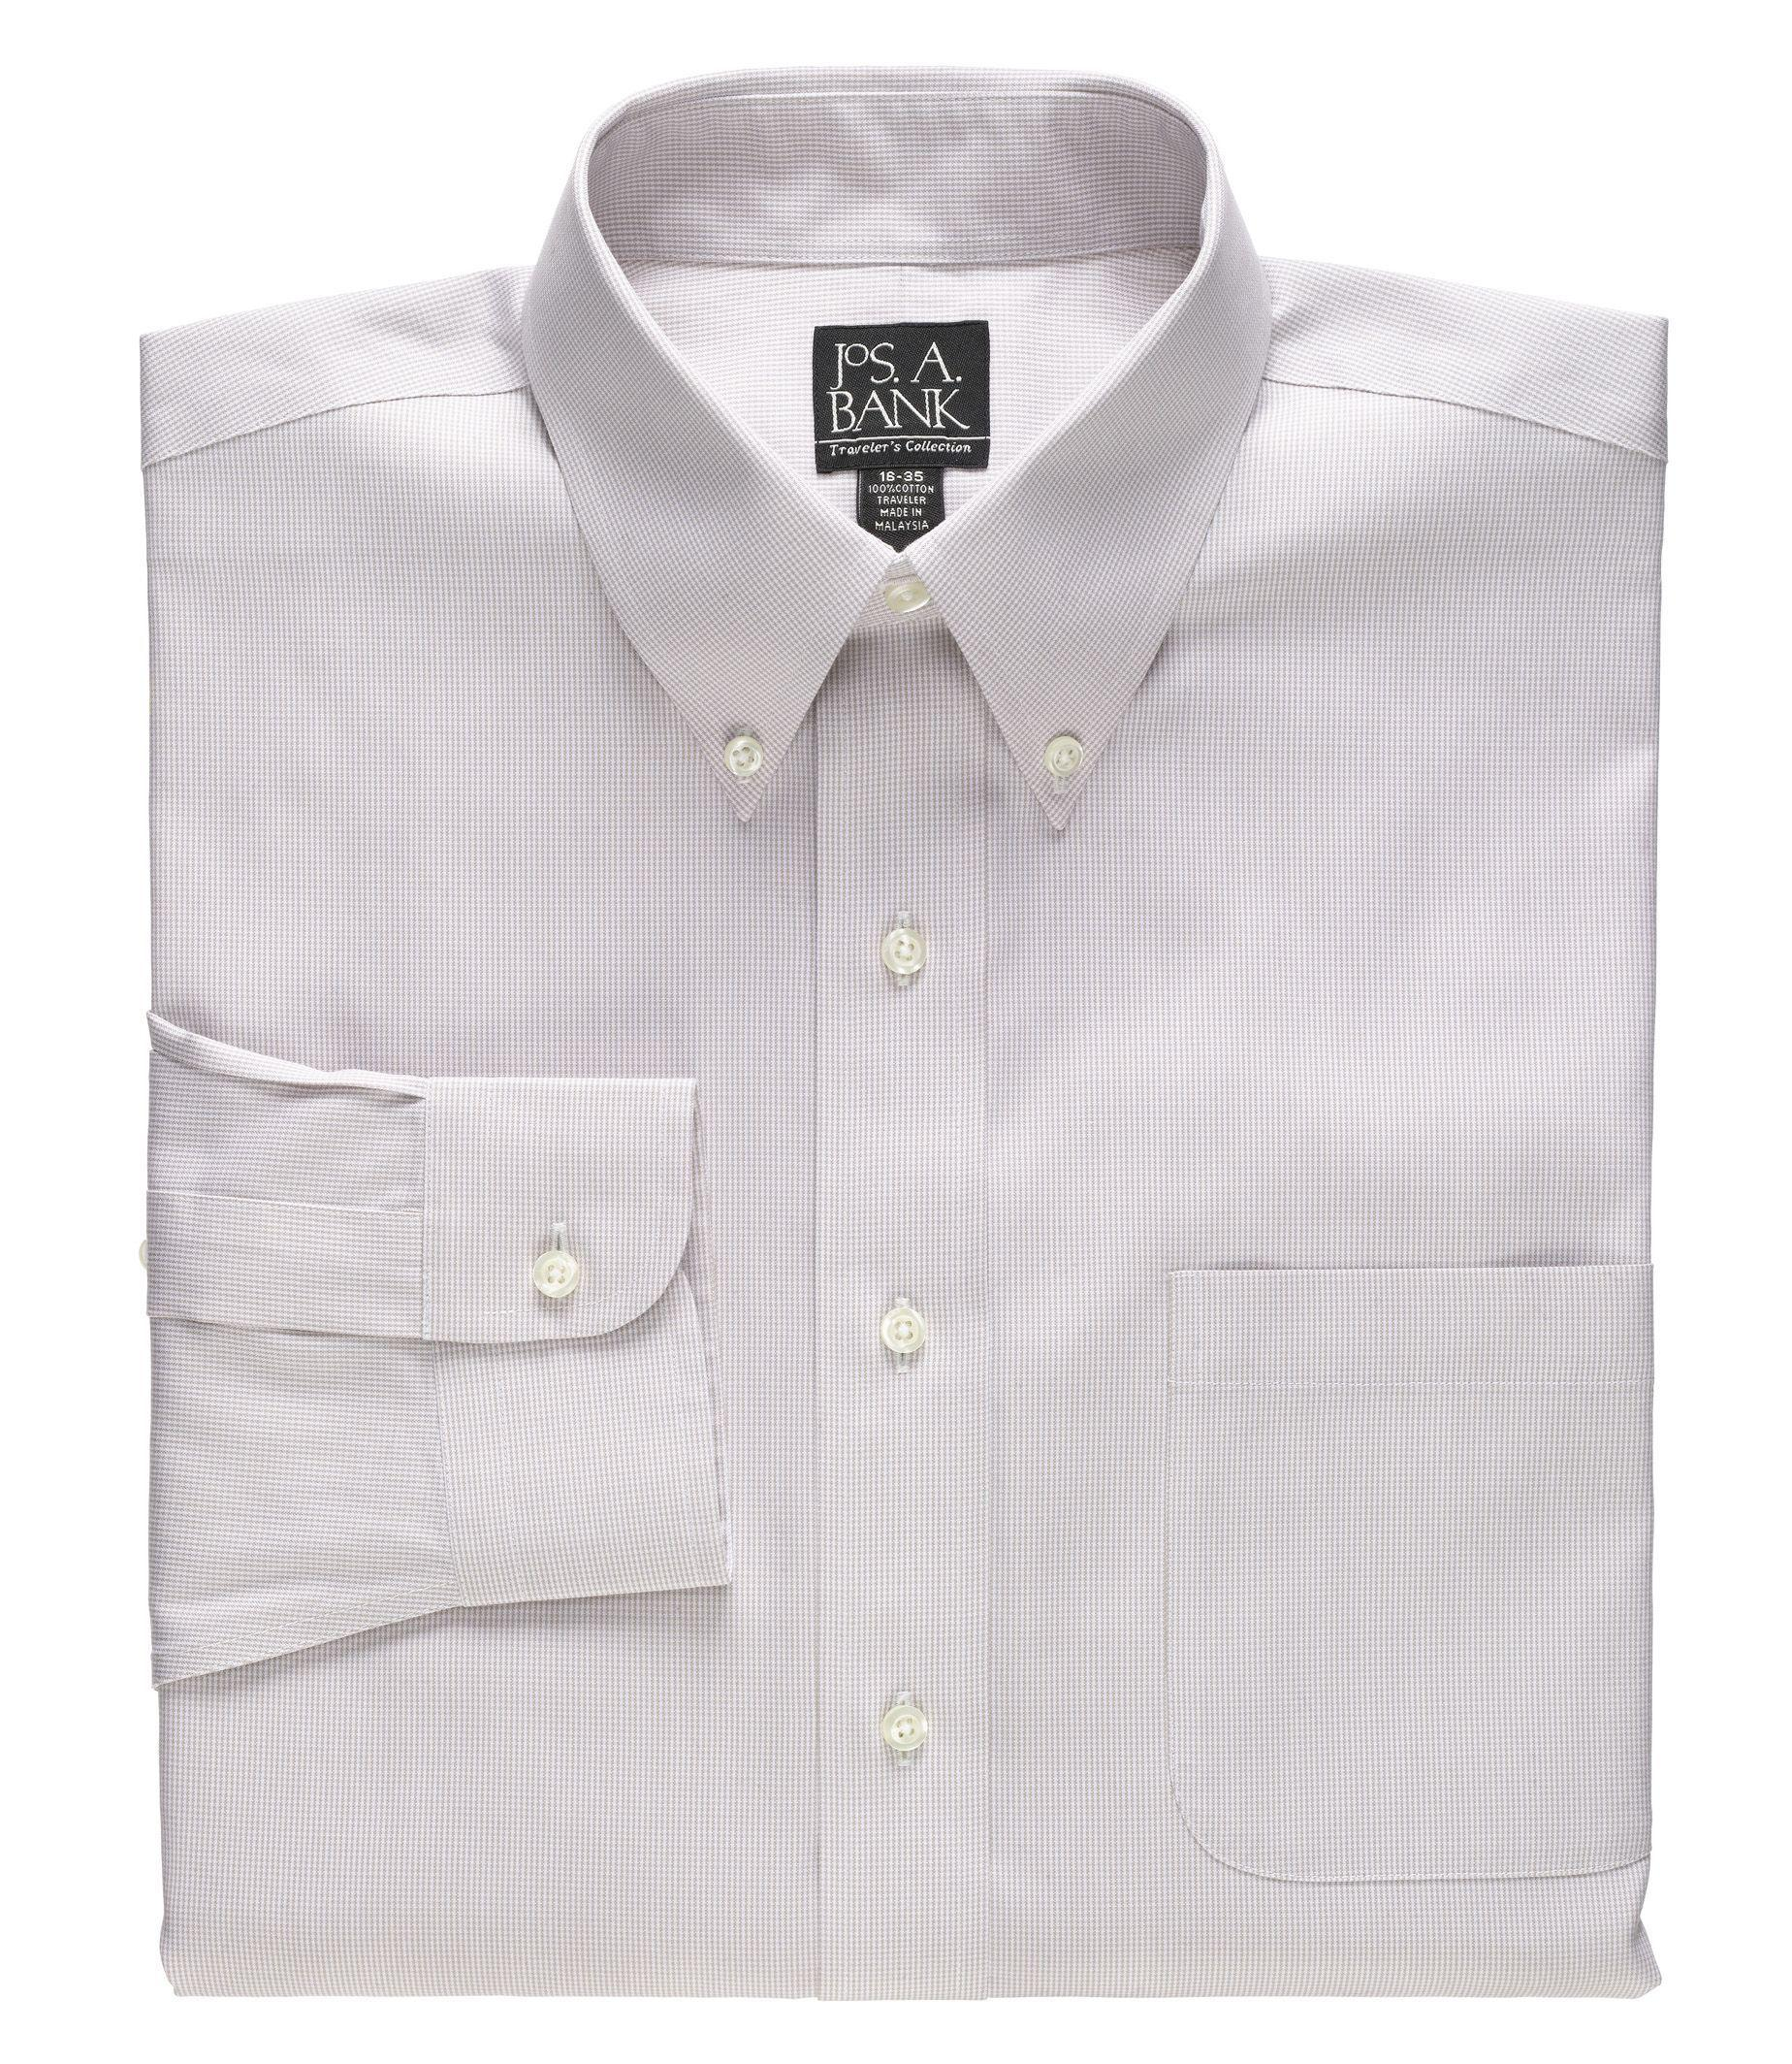 Jos a bank traveler collection traditional fit button for Tall collar dress shirts